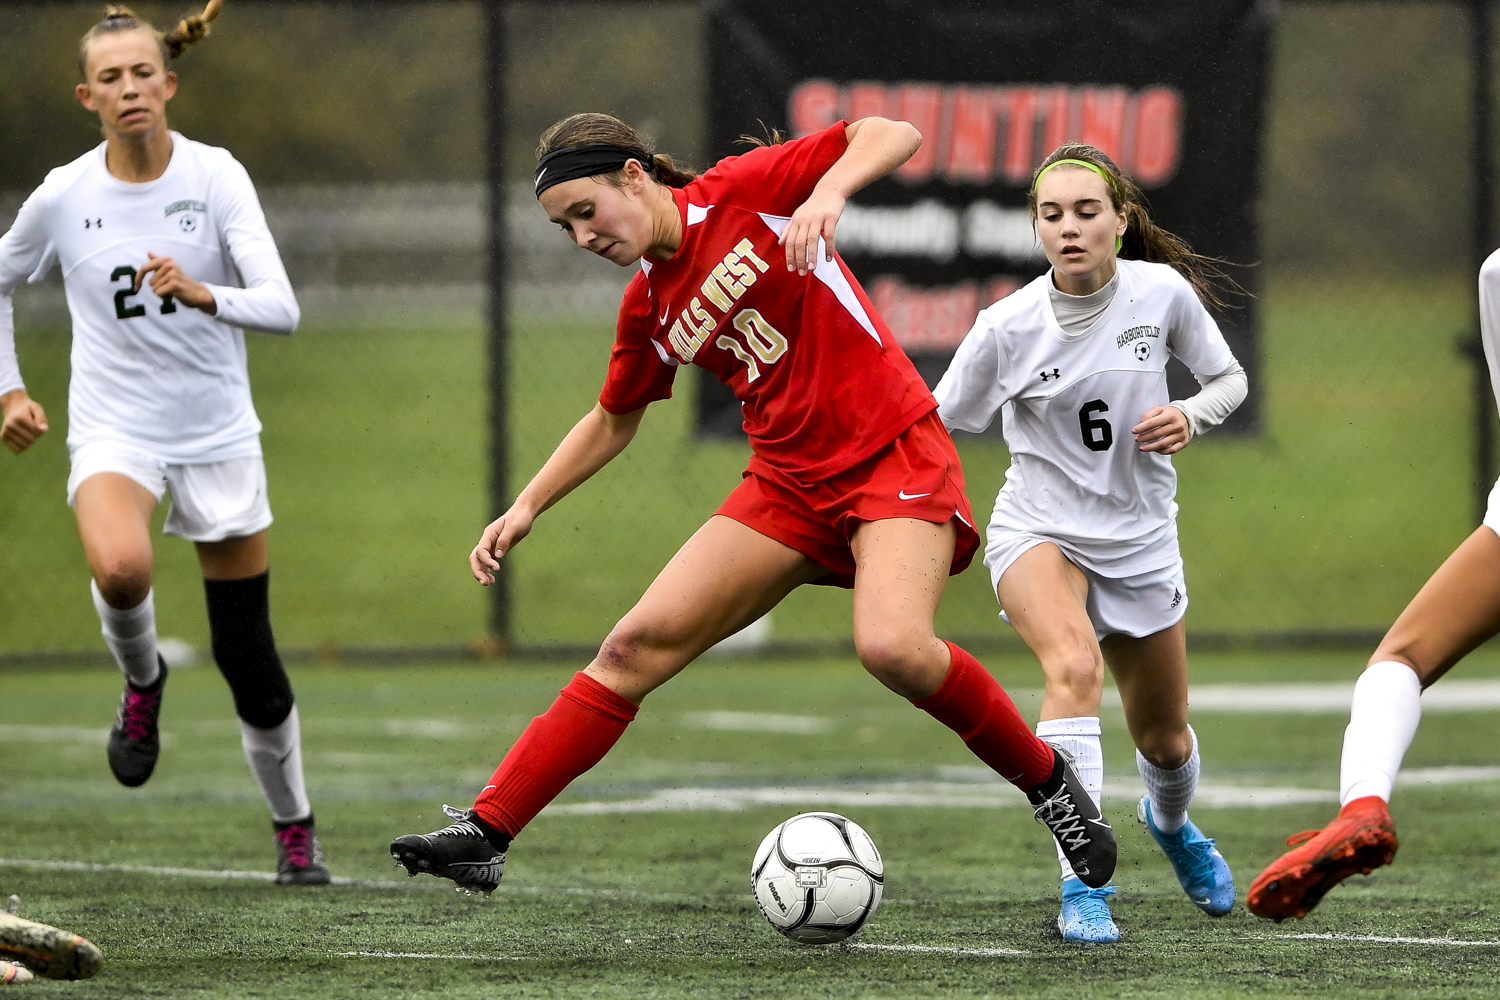 Hills West's Jordyn Levy Named Soccer All-American